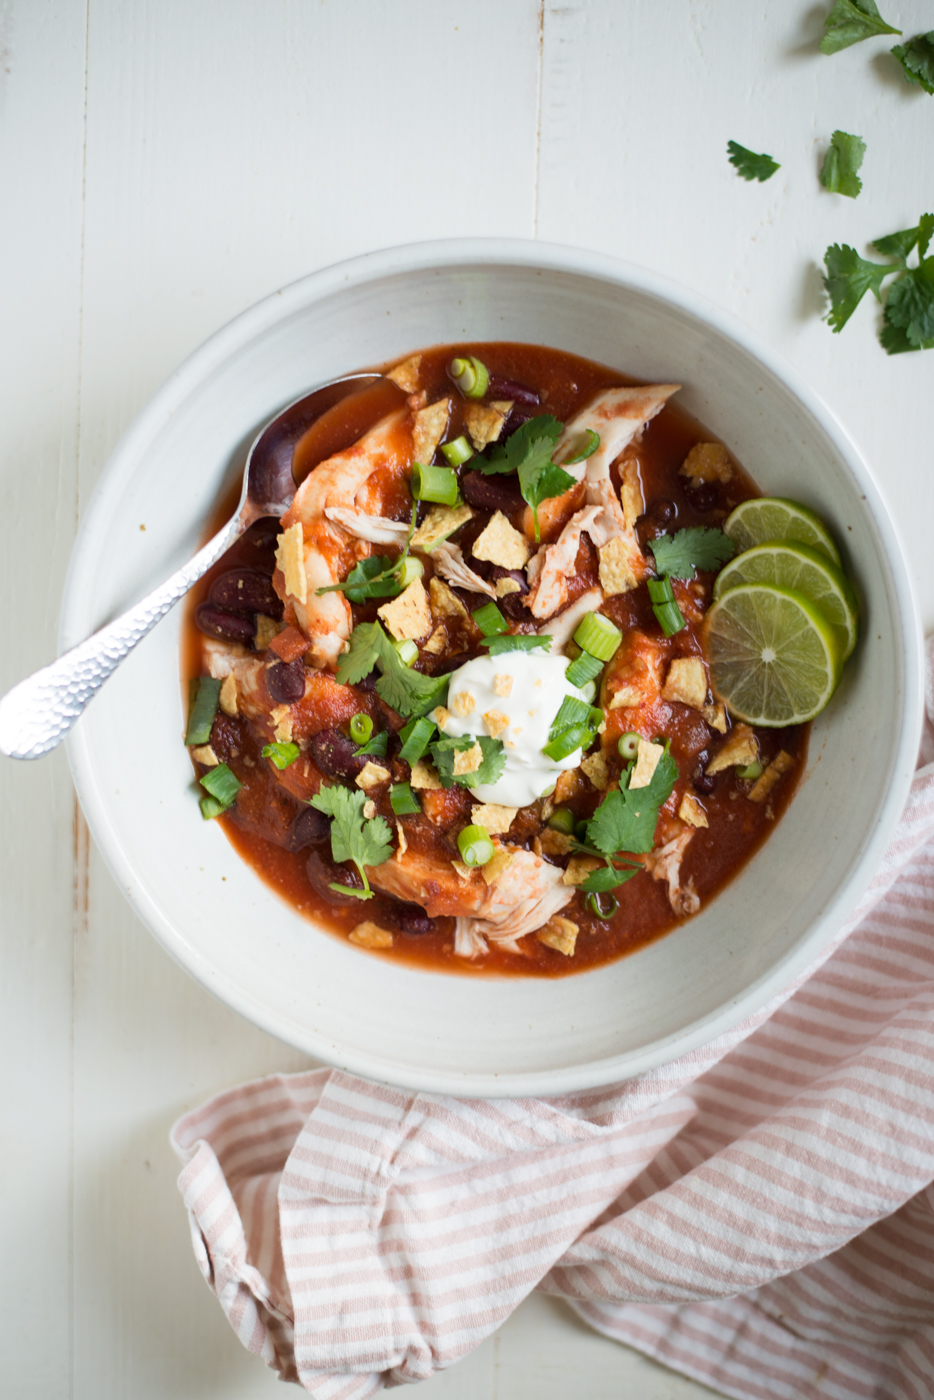 6-Ingredient Slow Cooker Chicken Taco Chili is an insanely simple and totally tasty recipe to throw together any night of the week. A naturally gluten-free, dairy-free recipe. #realfoodwholelife #realfoodwholeliferecipe #glutenfree #glutenfreerecipe #dairyfree #dairyfreerecipe #healthy #healthyrecipe #easyrecipe #quickrecipe #cleaneating #crockpot #crockpotrecipe #slowcooker #slowcookerrecipe